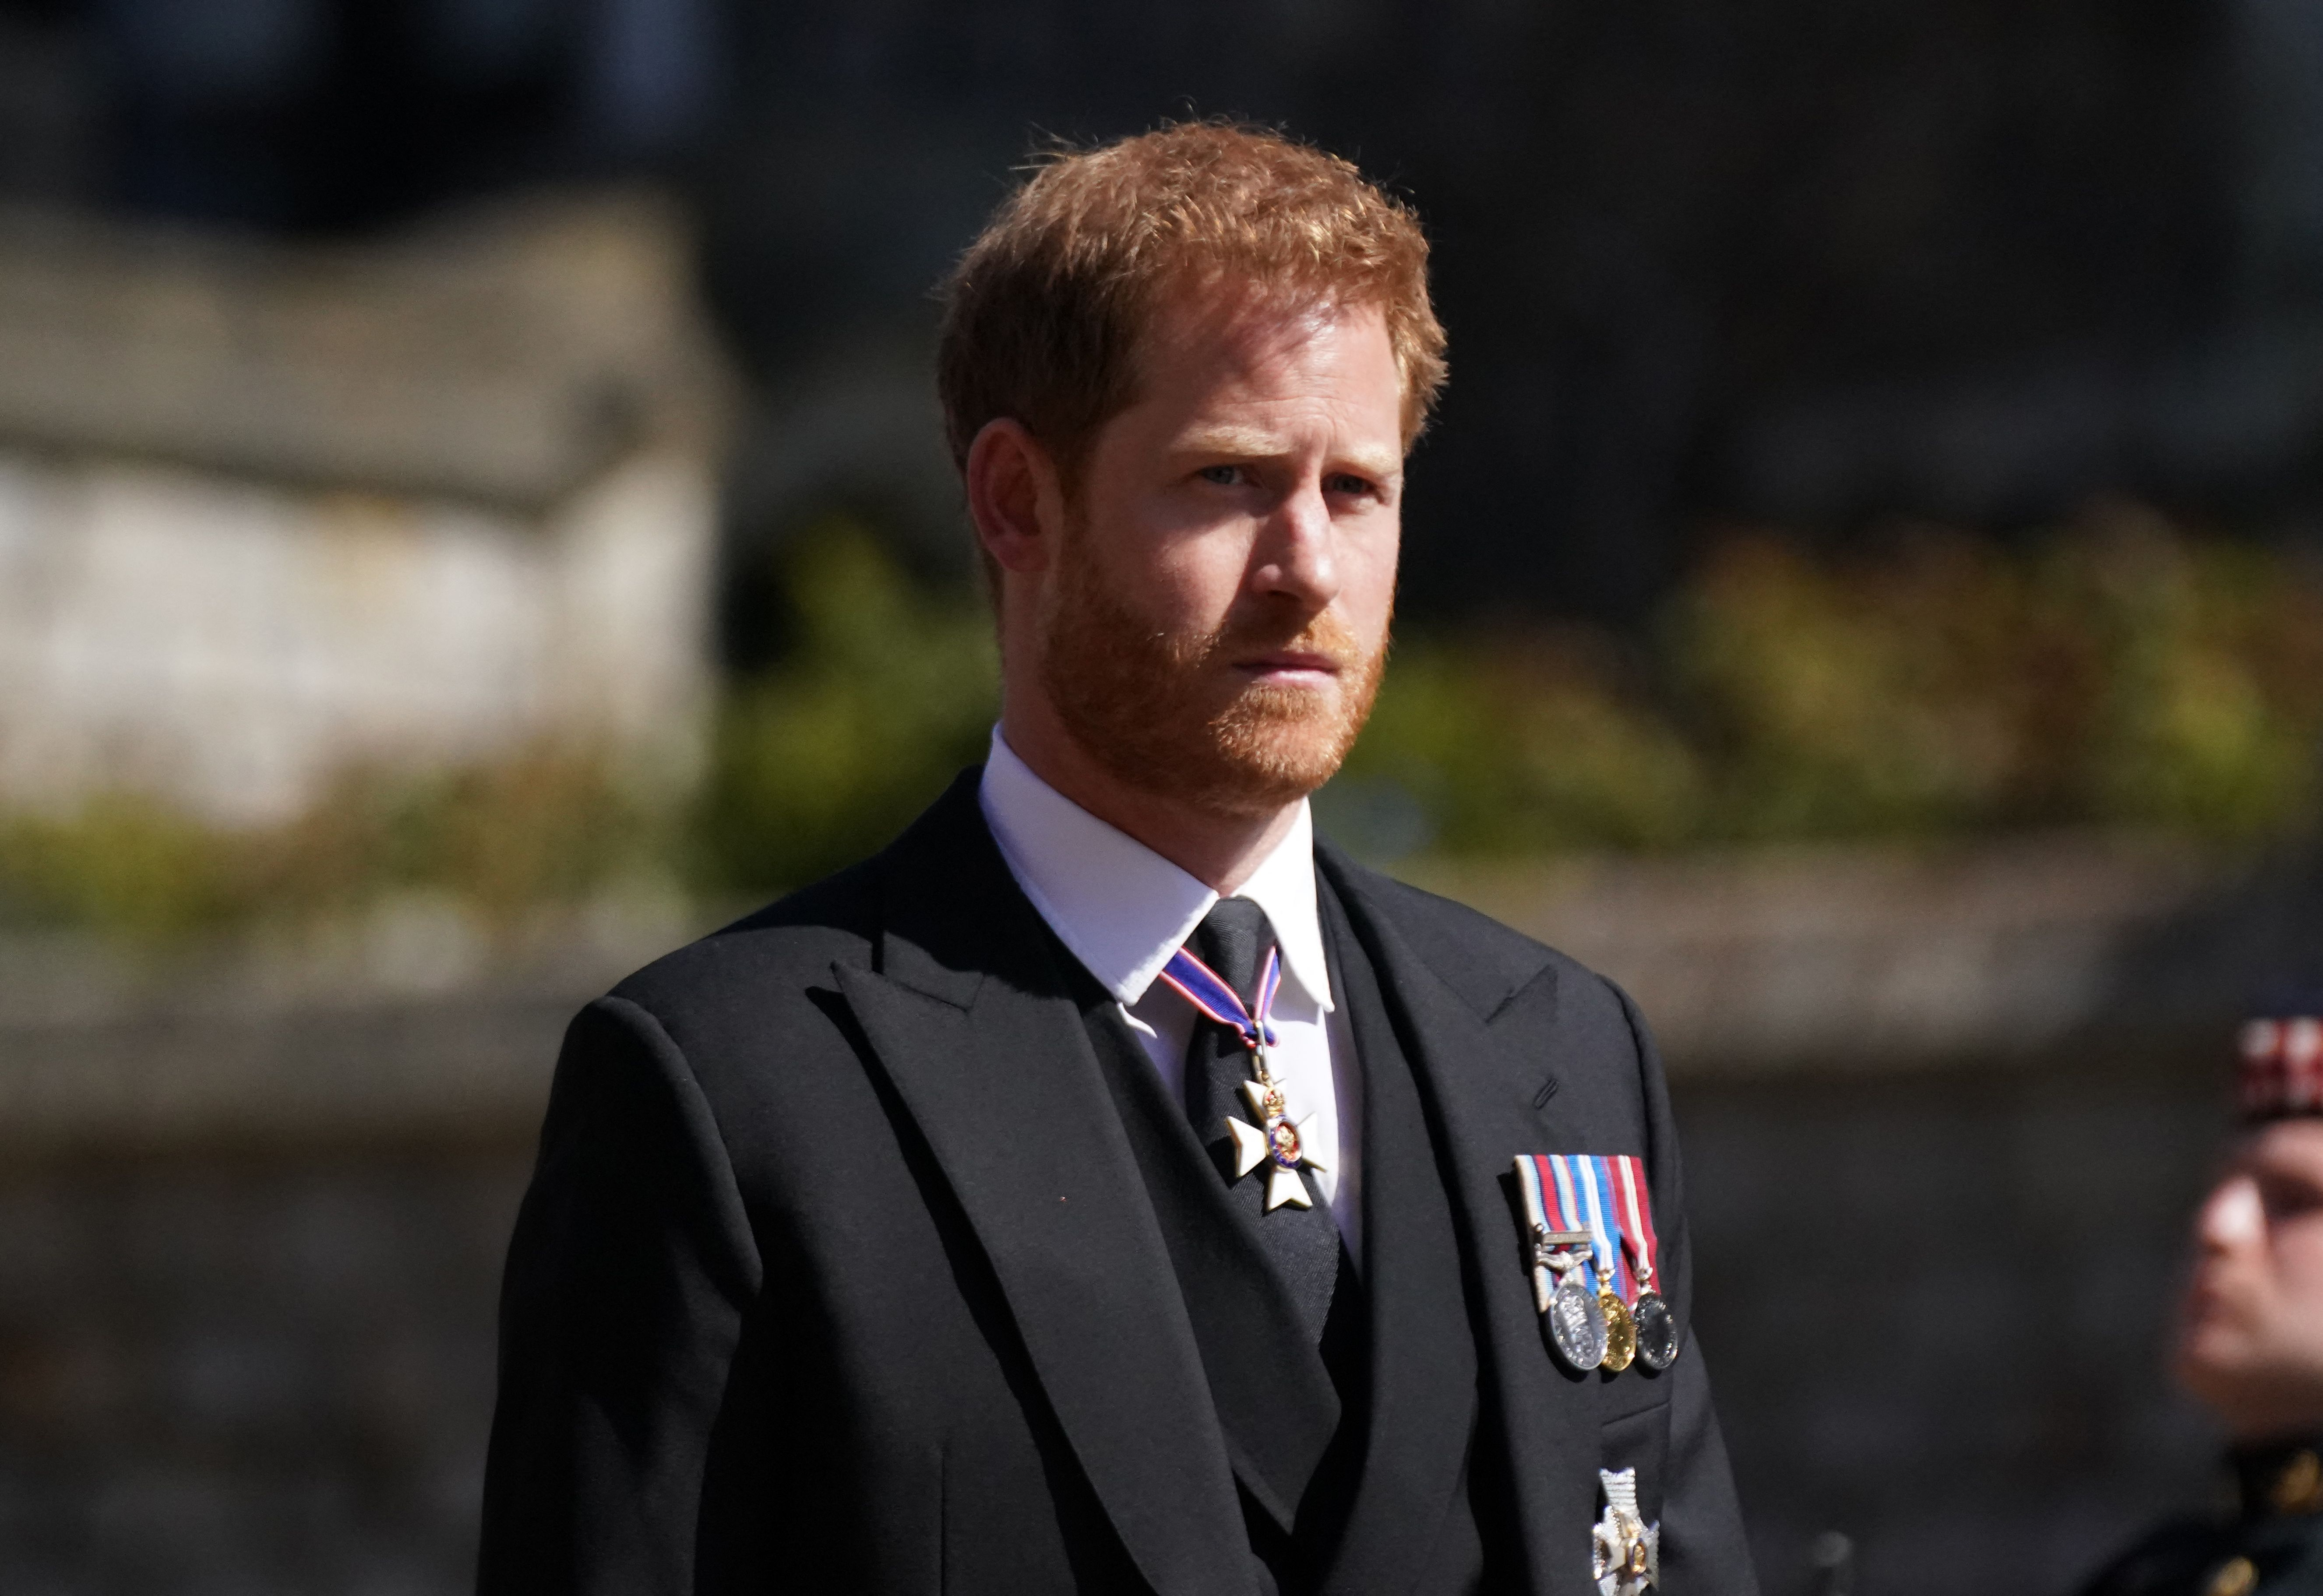 The Duke of Sussex reunites with his family at Prince Philip's funeral